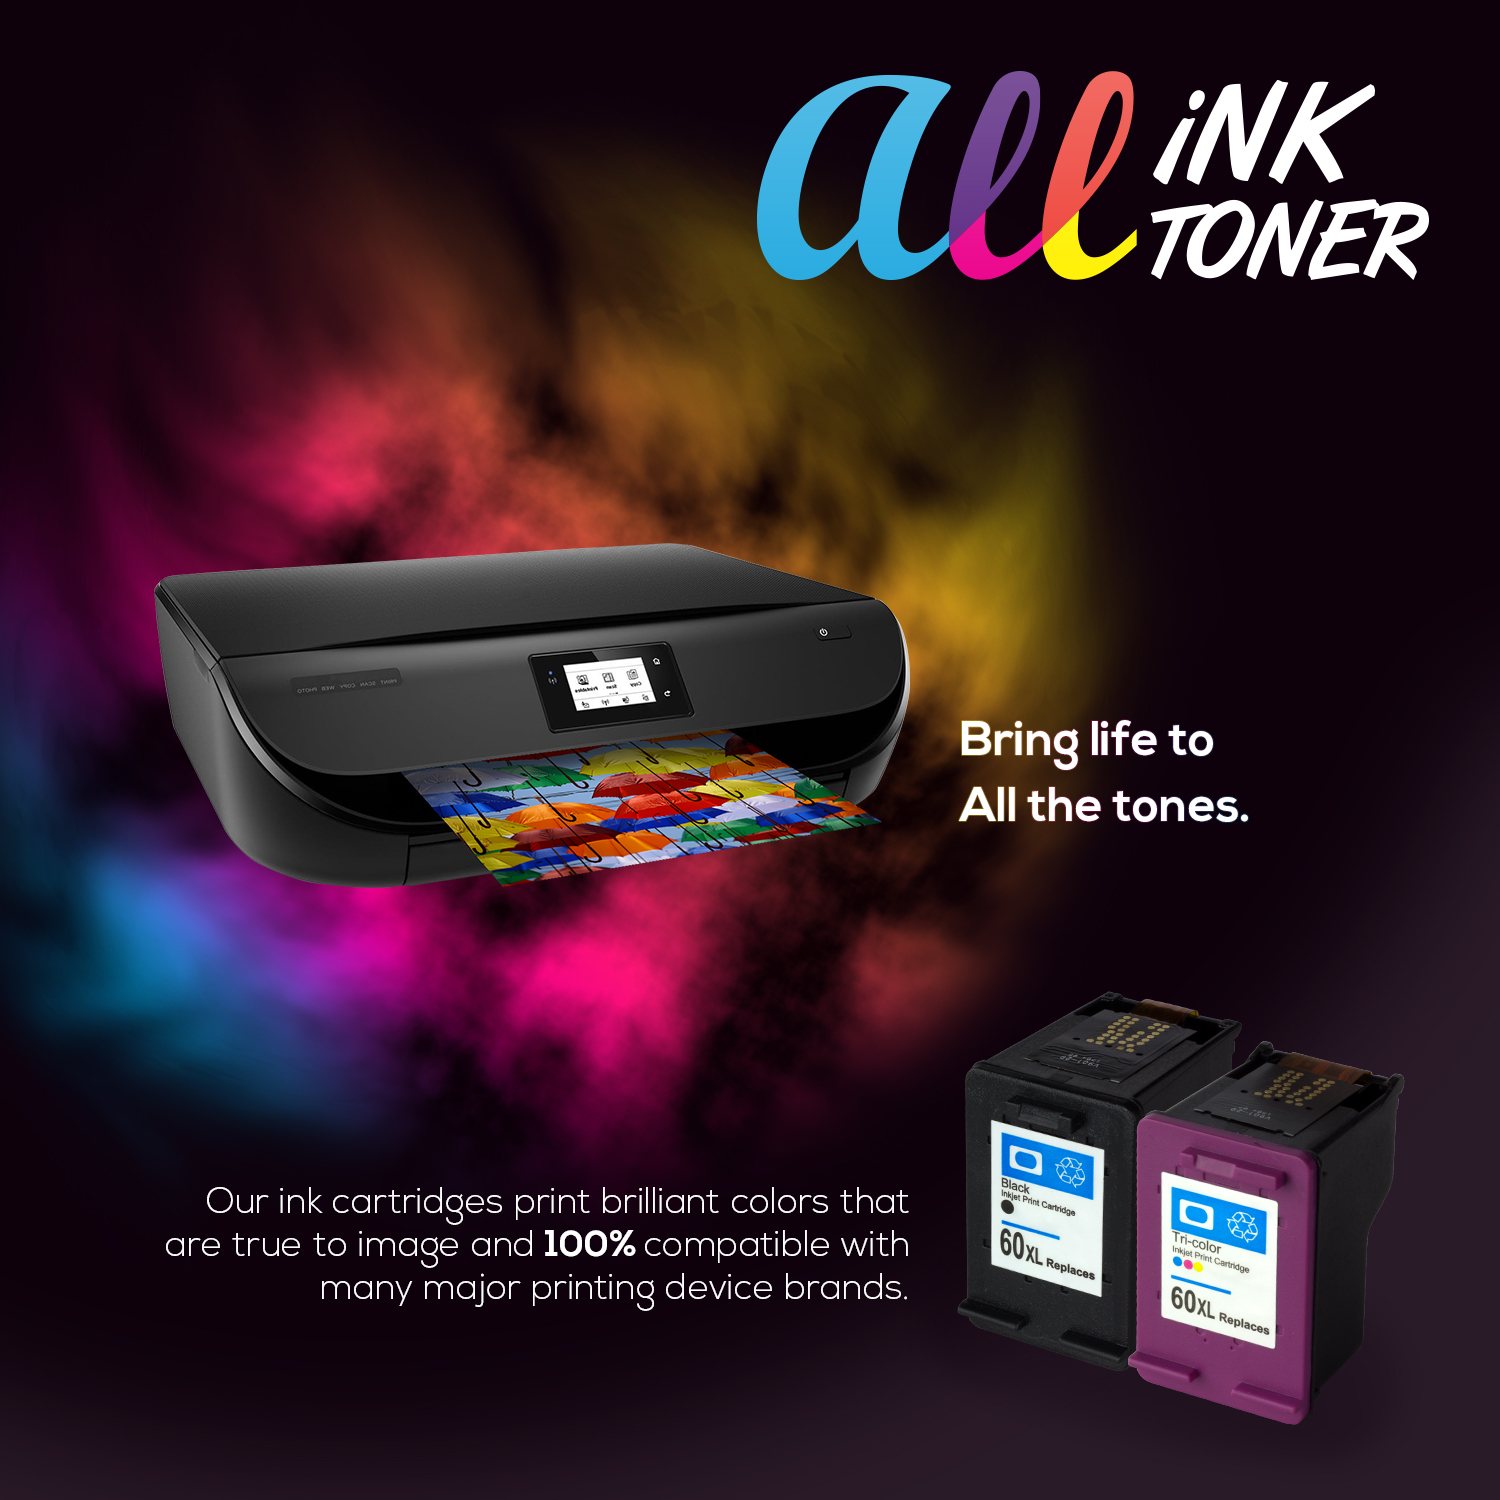 OFFICESMARTINK - CL31 Canon Cartridge Compatible [2 Pack] Color Ink Cartridge w/ Auto-Reset Ink for Canon PIXMA iP1800, iP2600, MP140, MP190, MP210, MP470, MX300, MX310